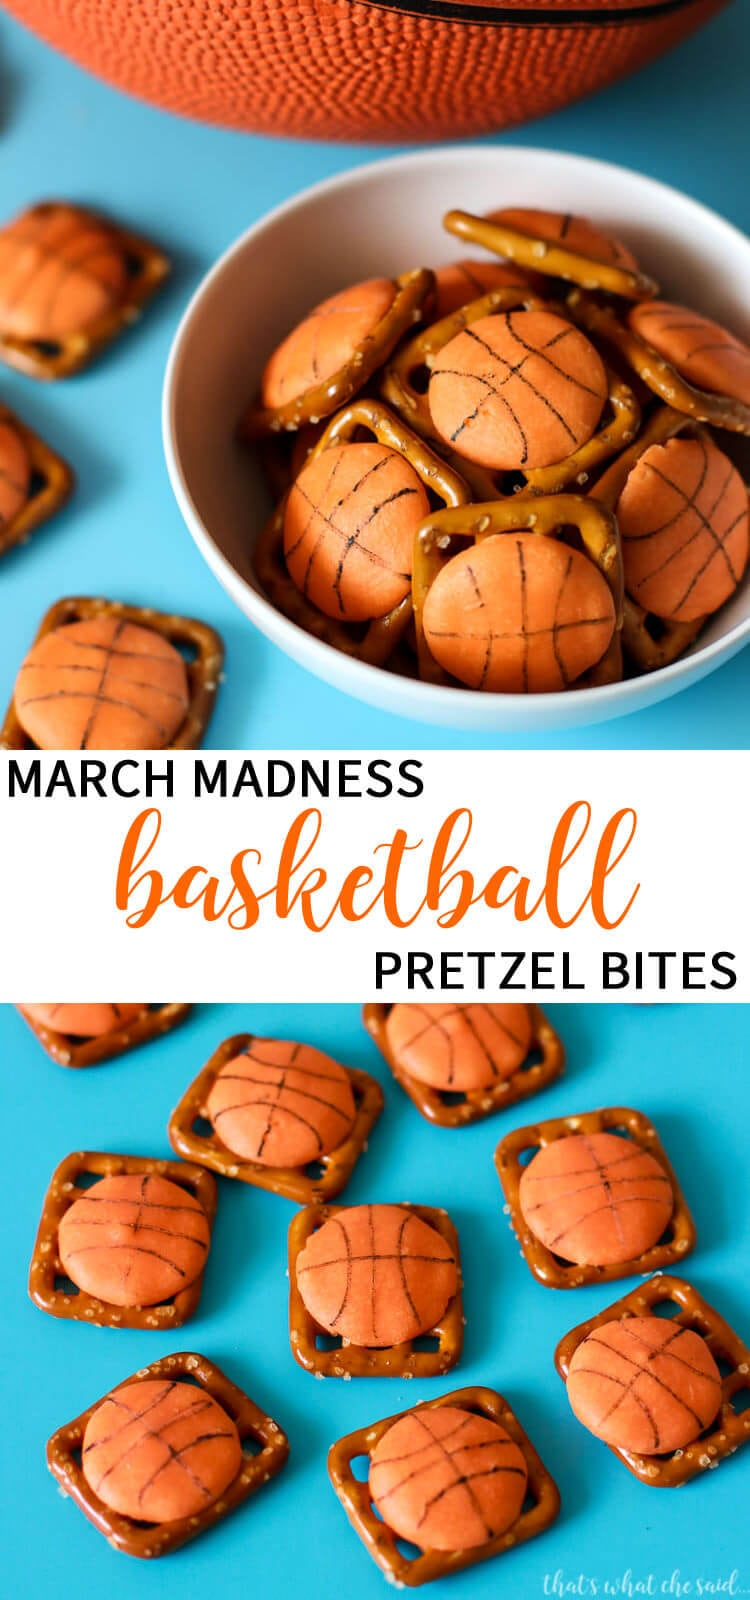 March Madness Snack Idea - Basketball Pretzel Bites